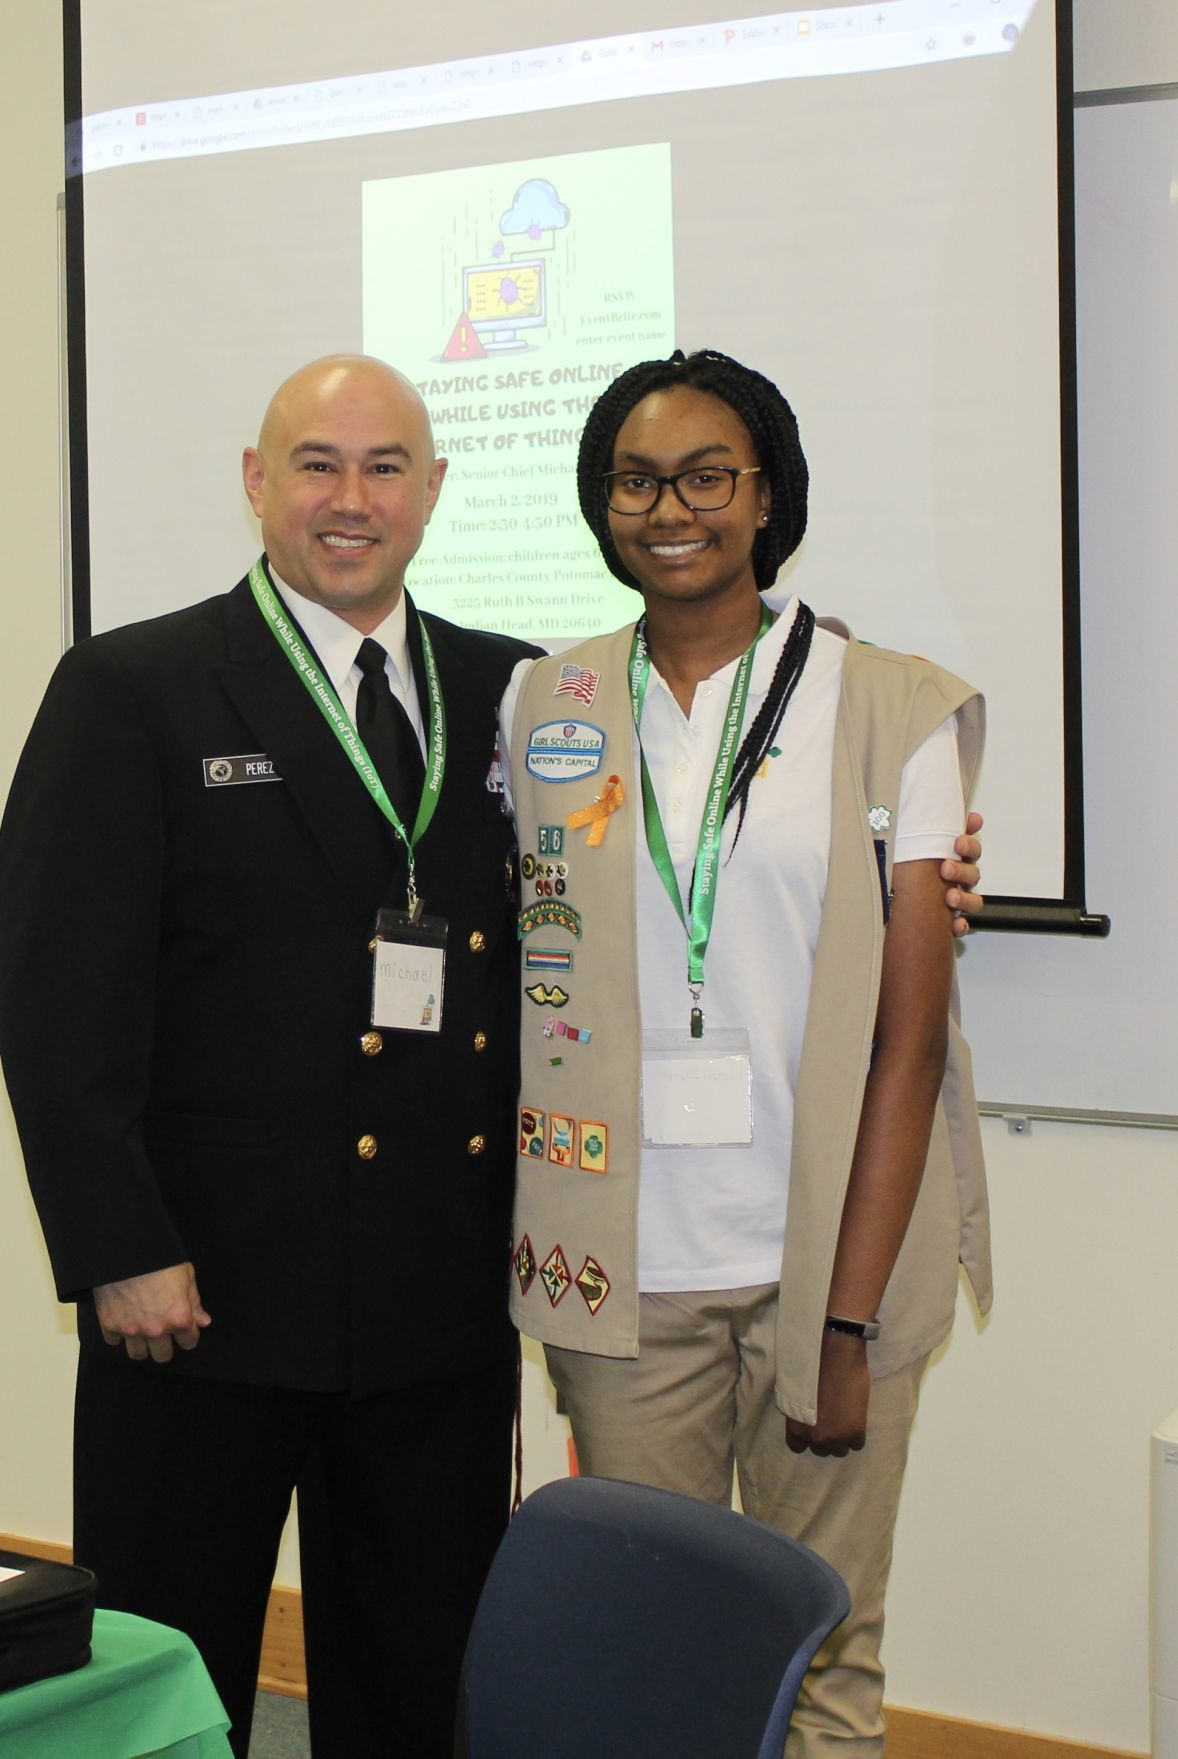 St. Mary's Ryken Senior and Girl Scout ambassador helps spread awareness of internet safety